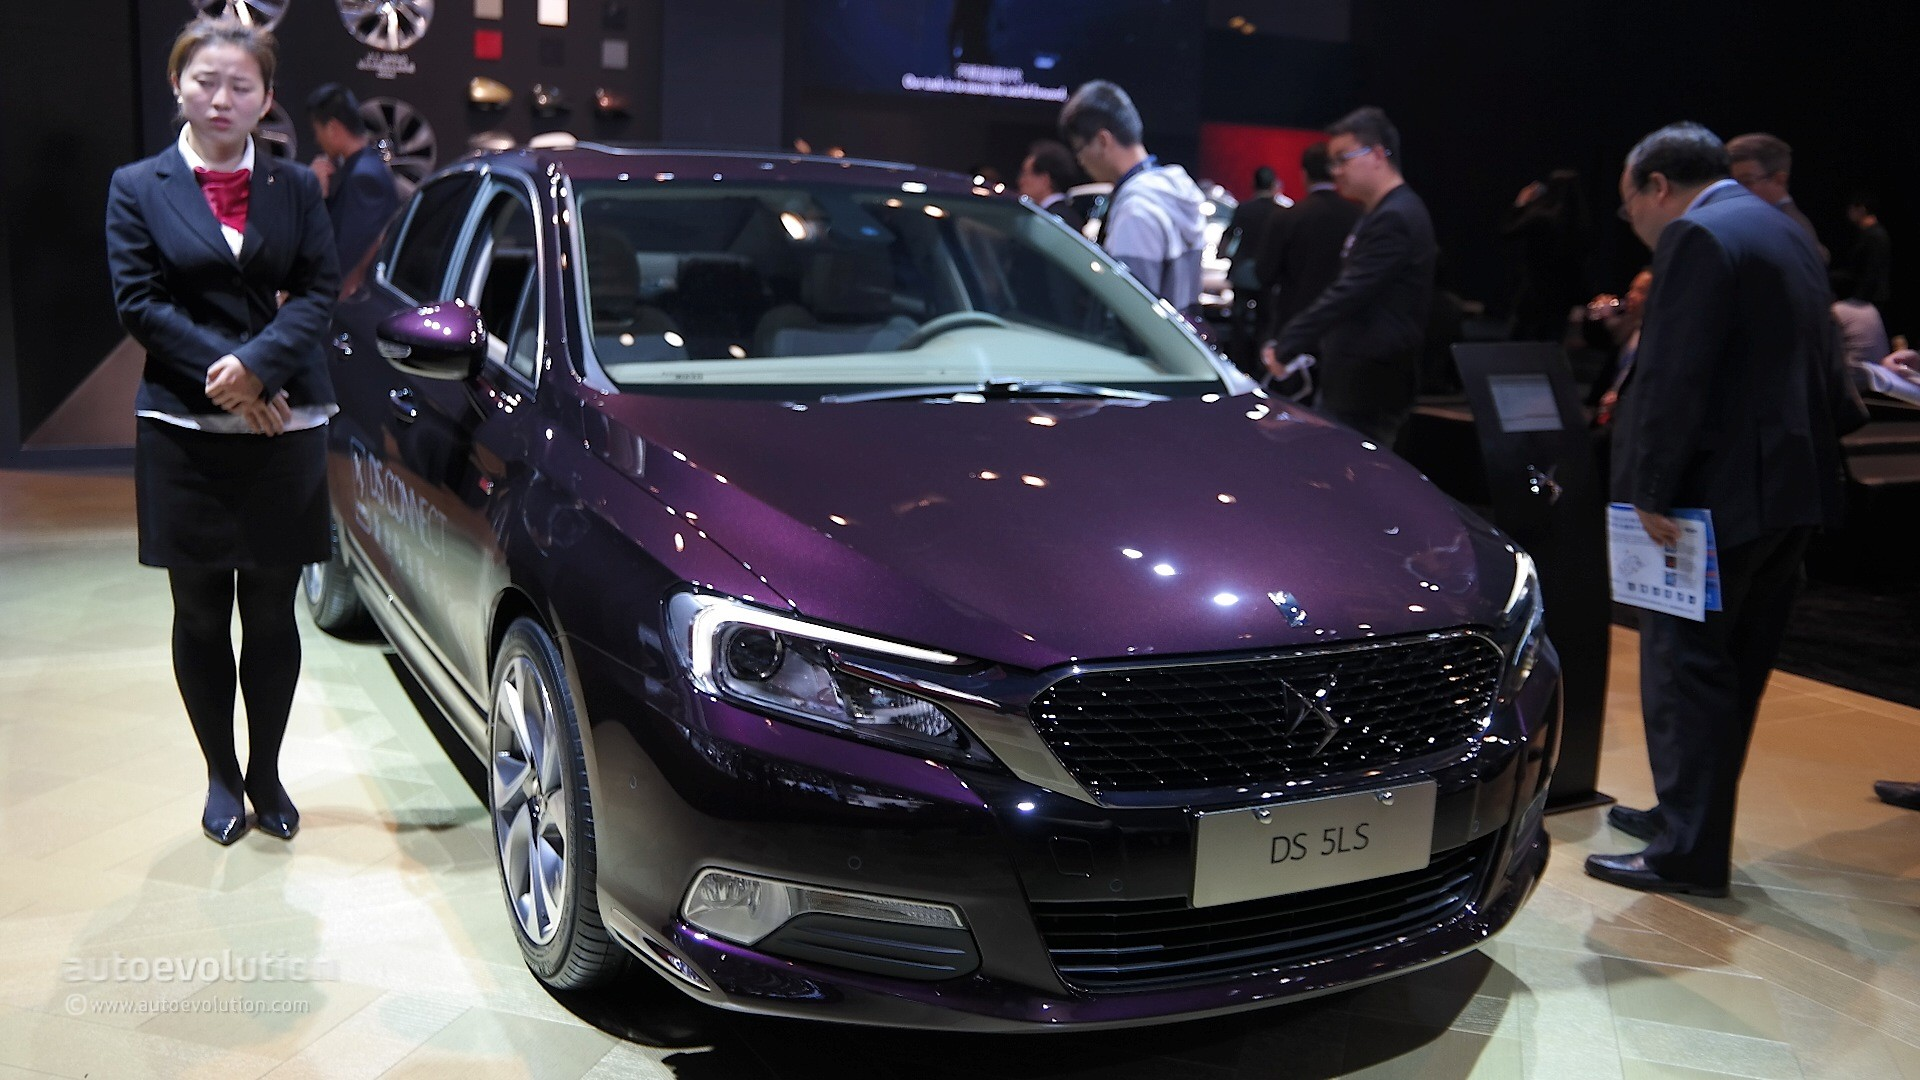 [SALON] Shanghai 2015 - Page 2 2015-ds-5ls-is-draped-in-metallic-purple-for-shanghai-live-photos_1